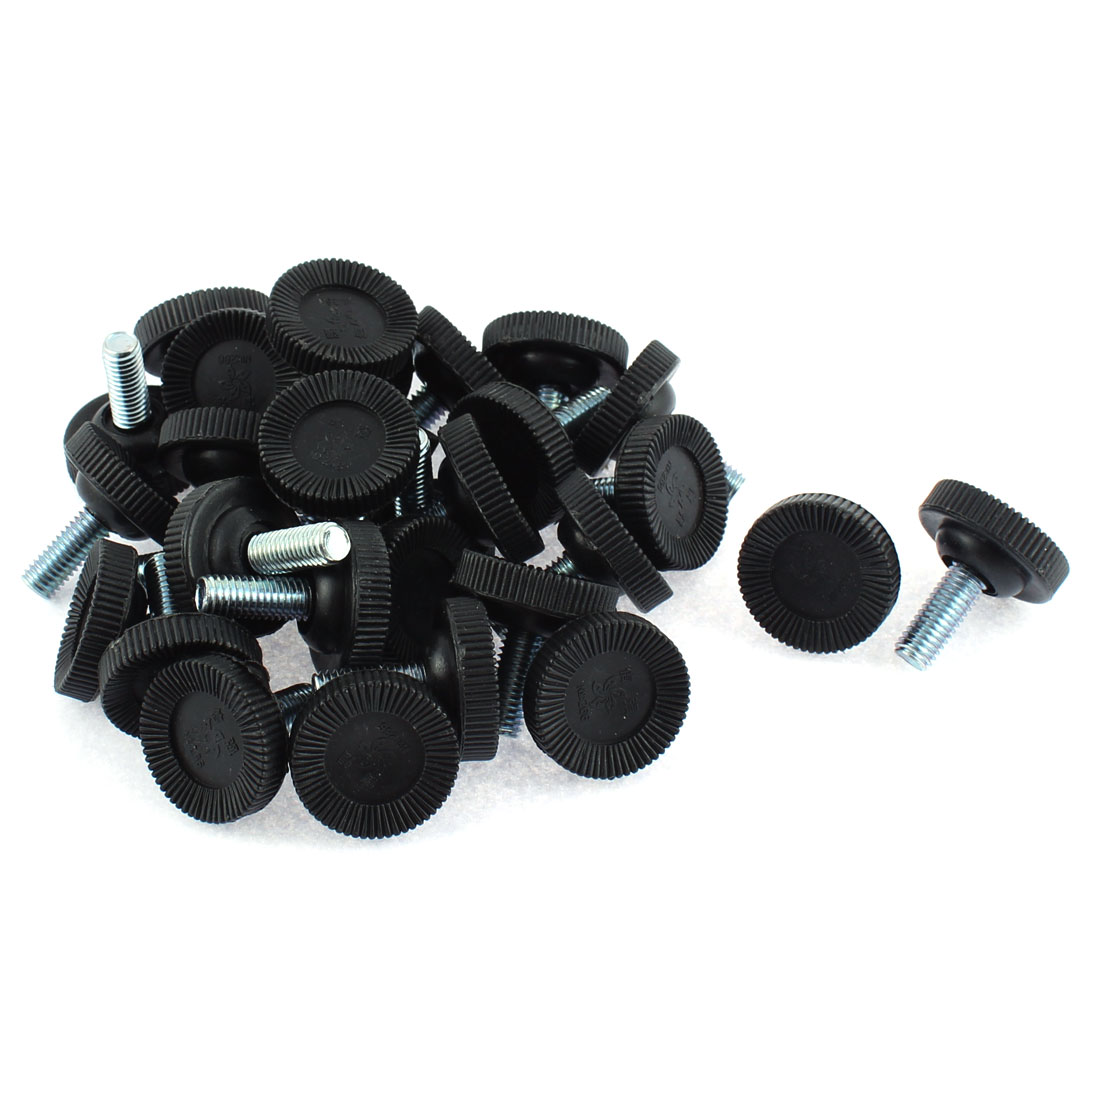 Adjustable Leveling Feet Foot Mounts Pads M8 x 19mm Thread 30pcs